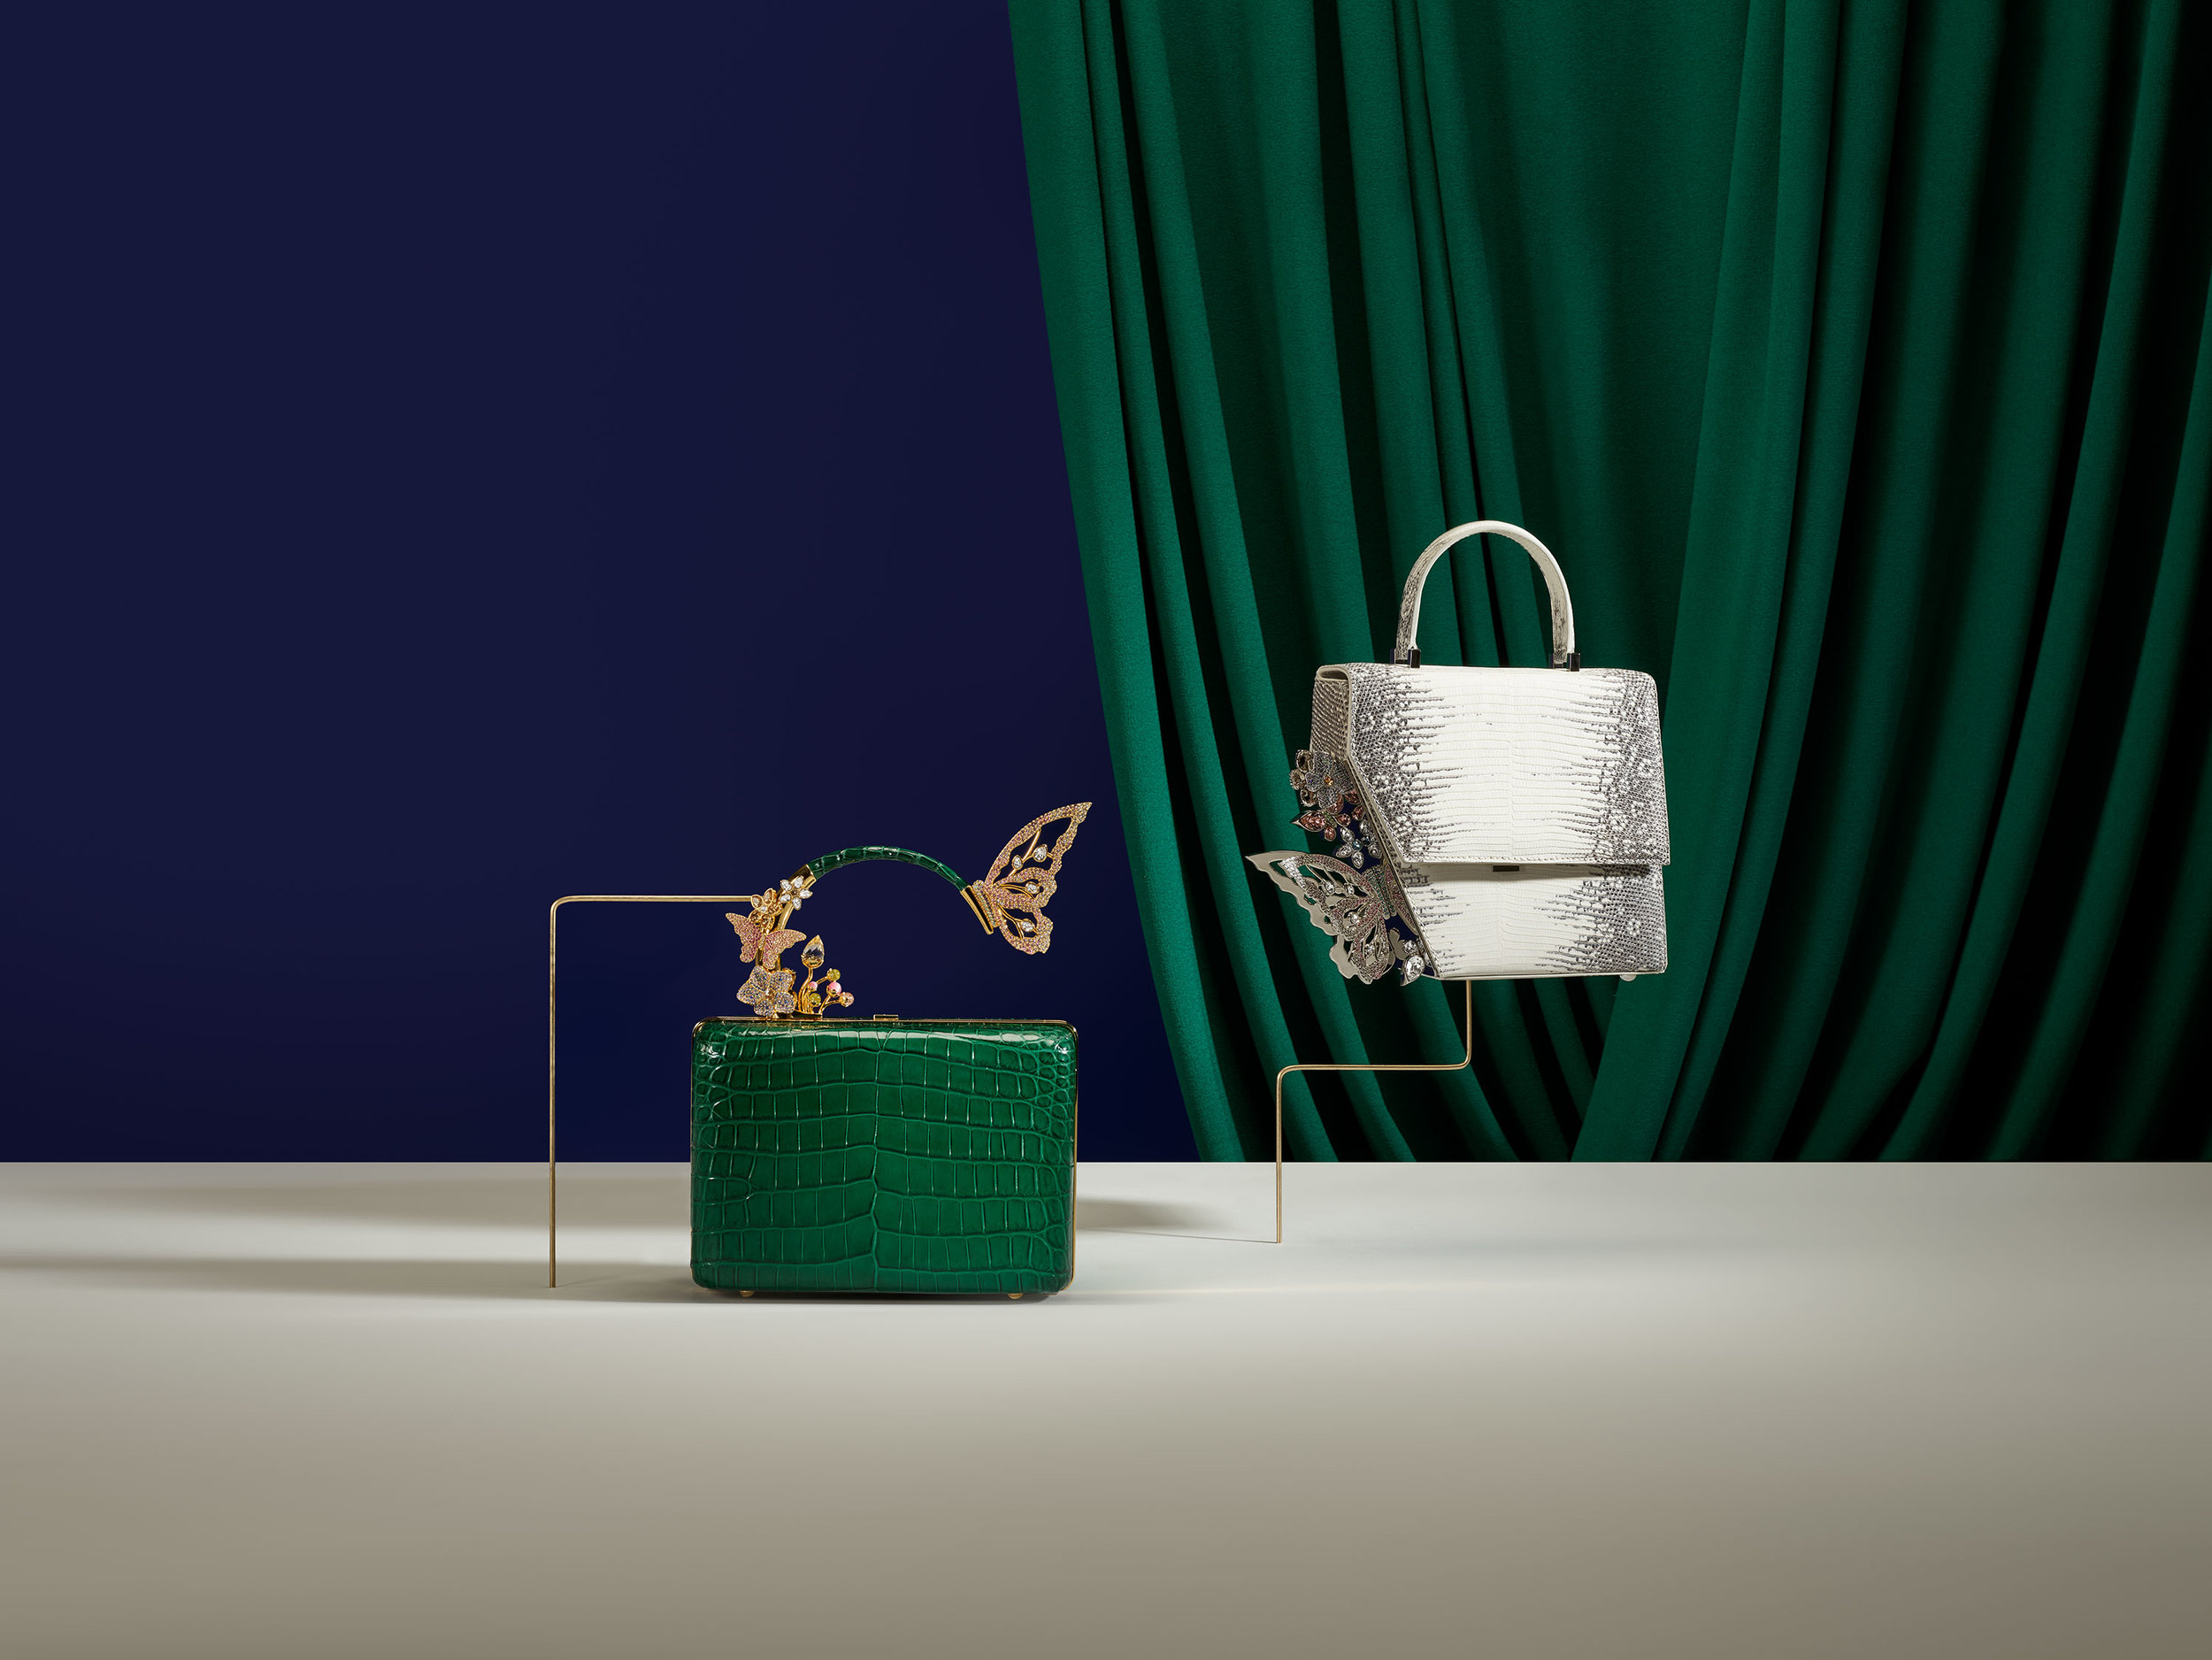 APPROACH_RETOUCH_STILL_LIFE_MING_RAY_AW19_3.jpg